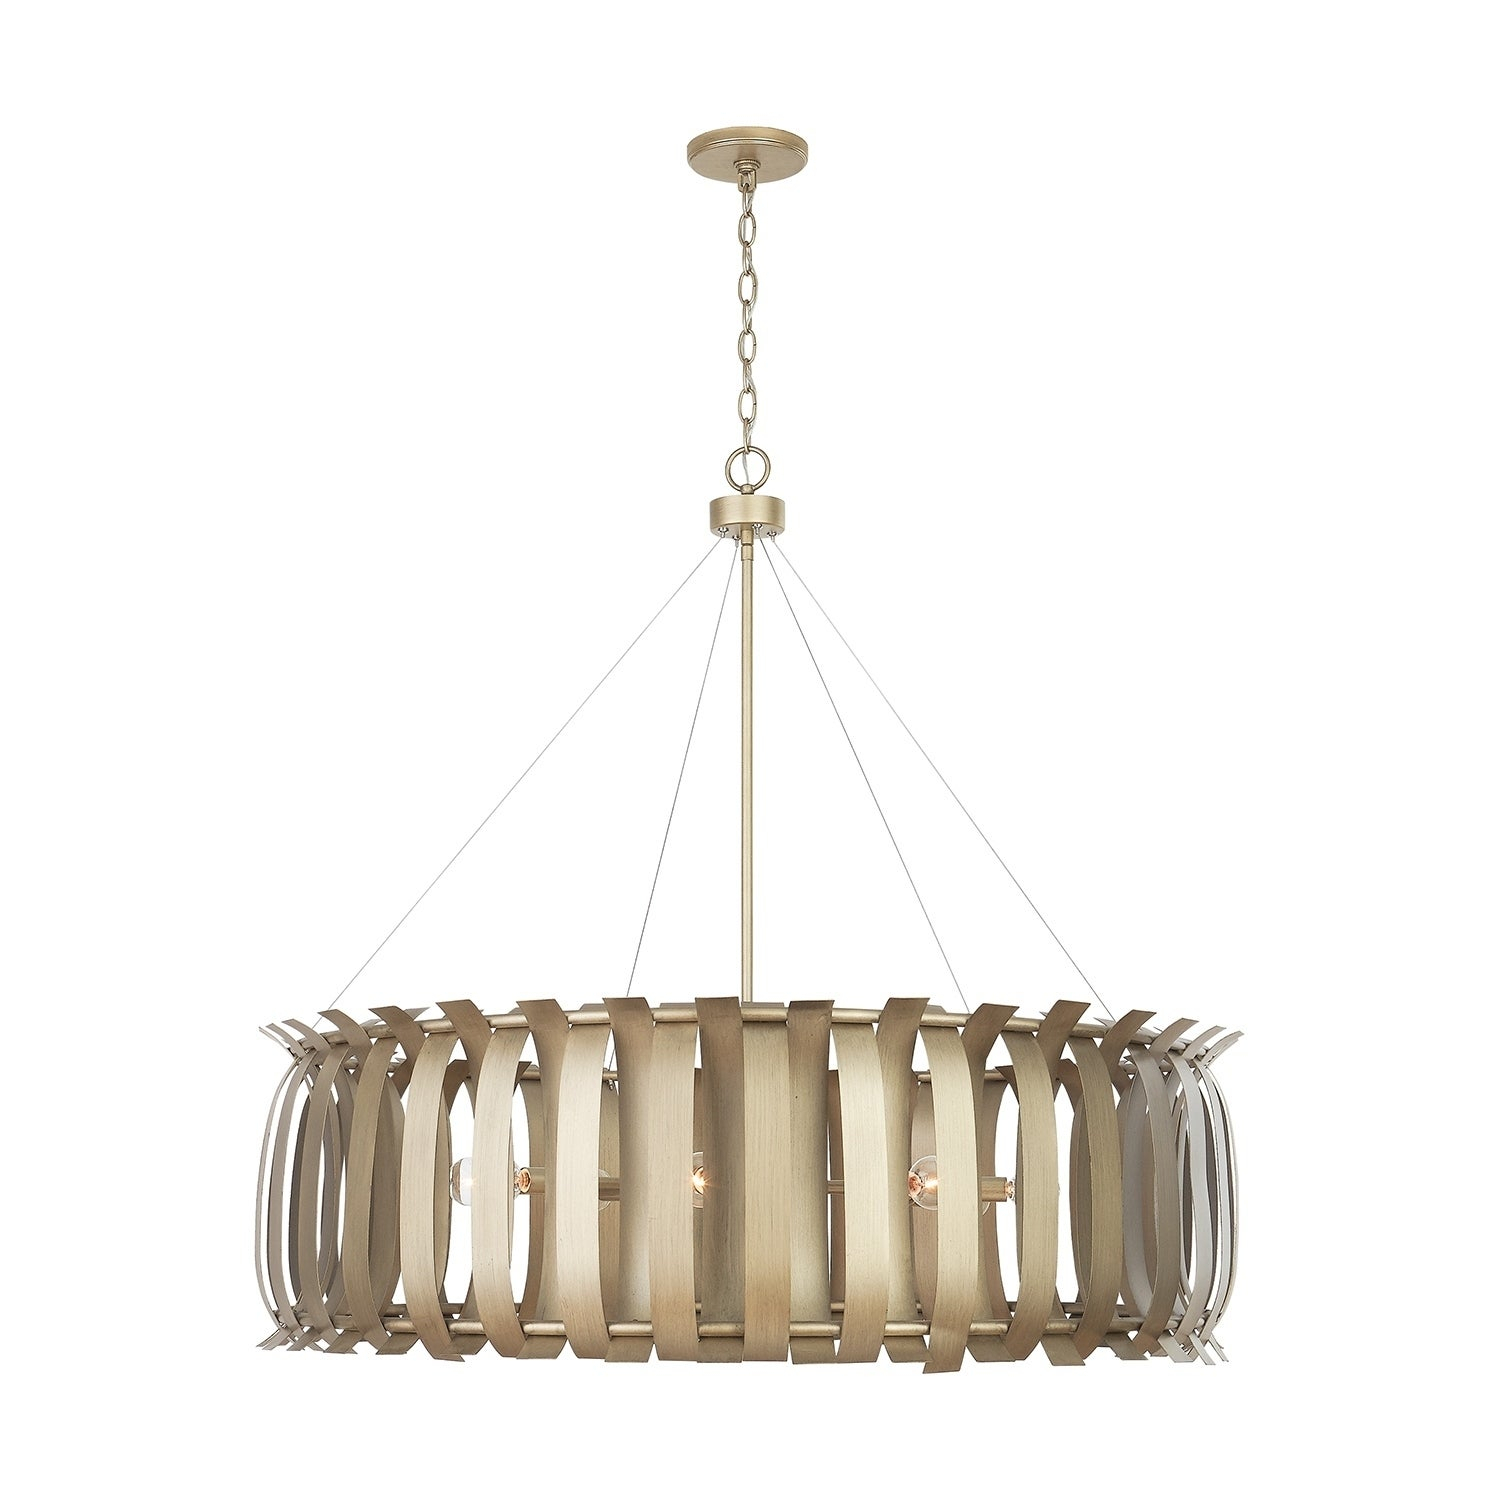 Cayden 8 Light Aged Brass Painted Chandelier Intended For Cayden 1 Light Single Globe Pendants (View 13 of 30)